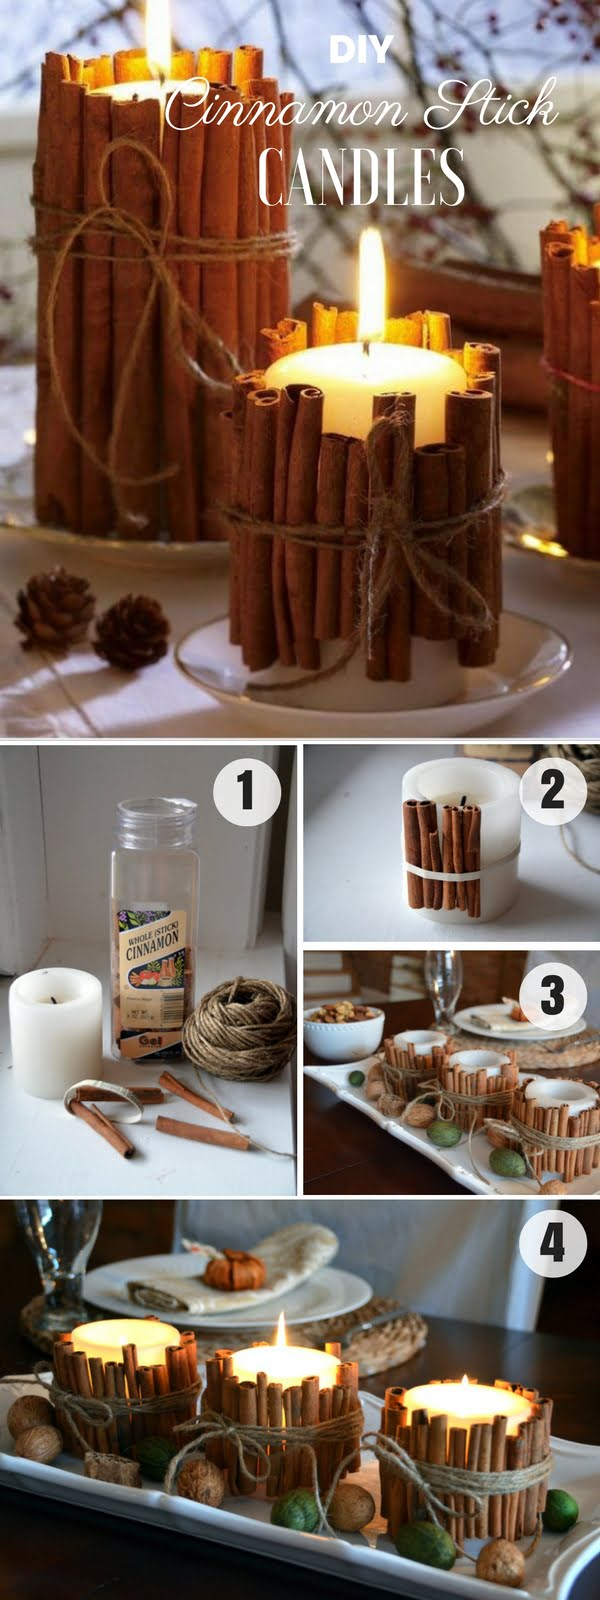 Easy to make DIY Cinnamon Stick Candles for fall decor